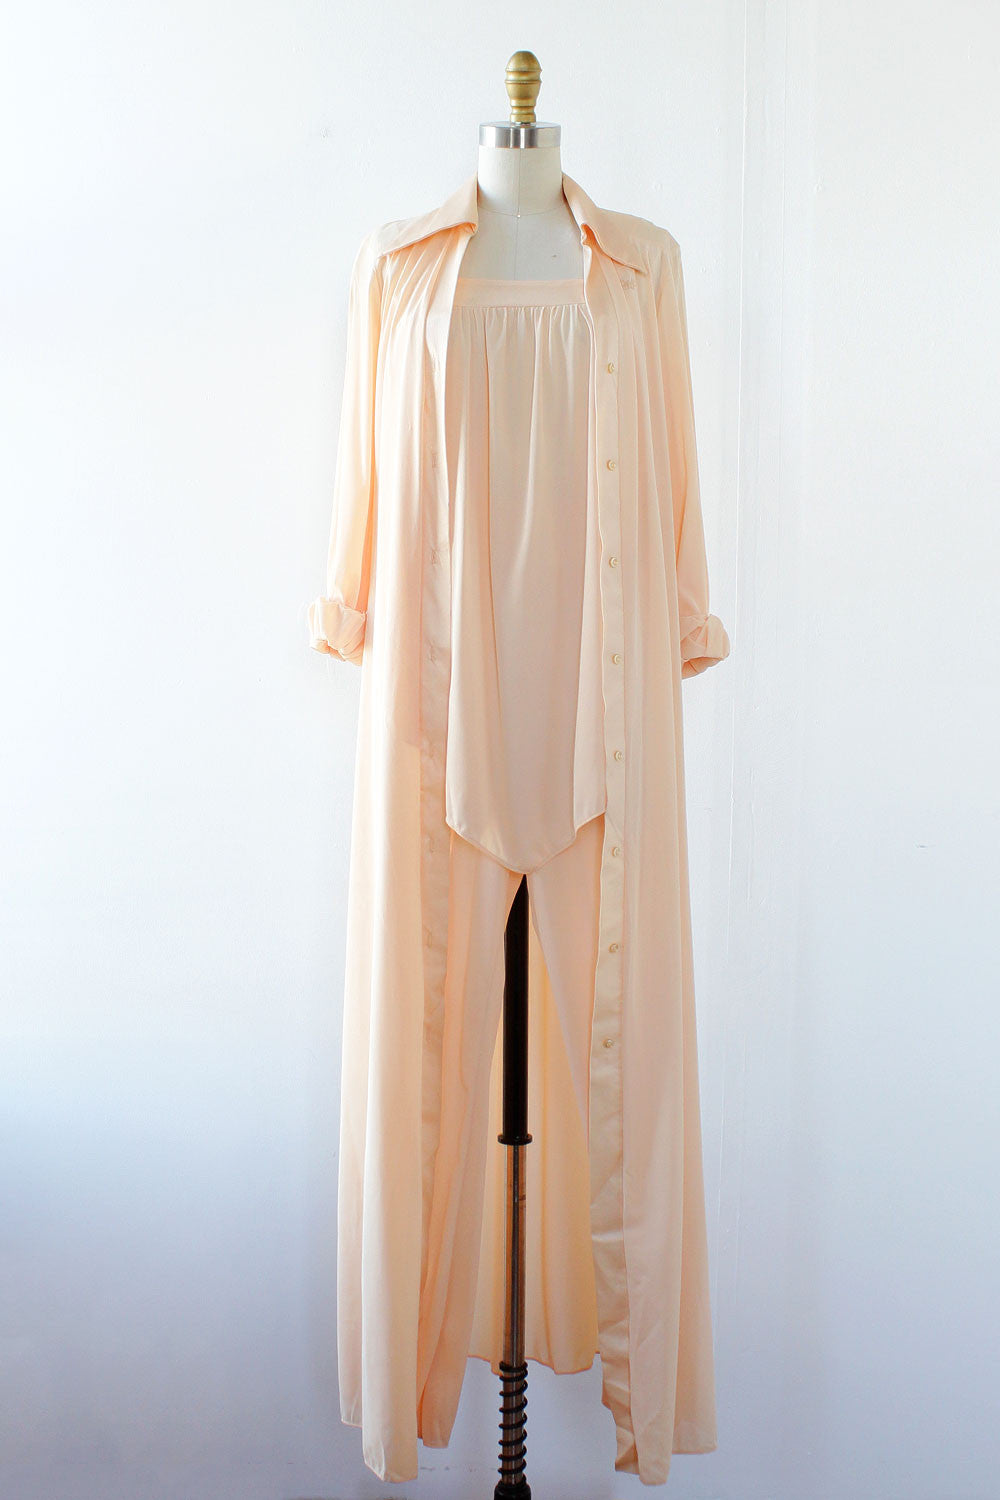 DVF Peach 3 Piece Pajama Set